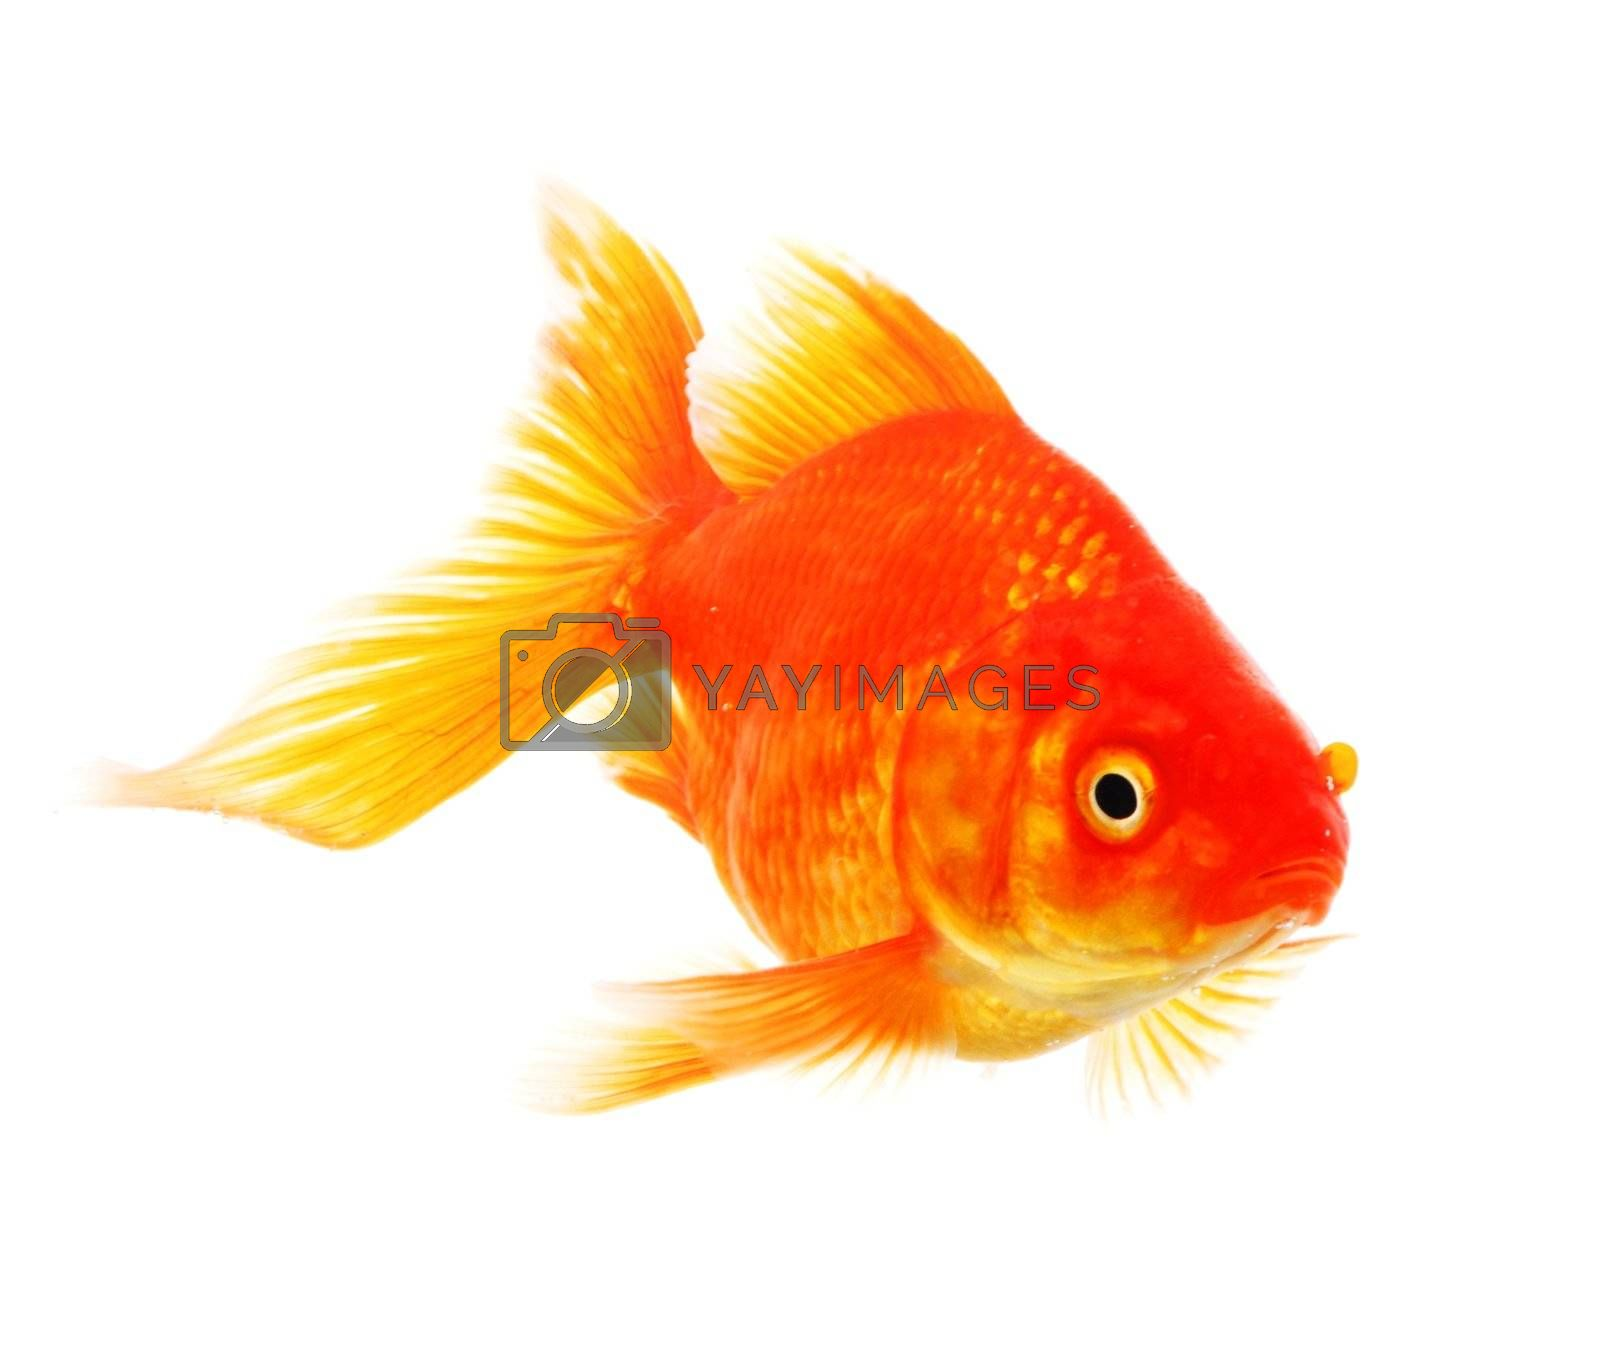 Royalty free image of goldfish by gunnar3000